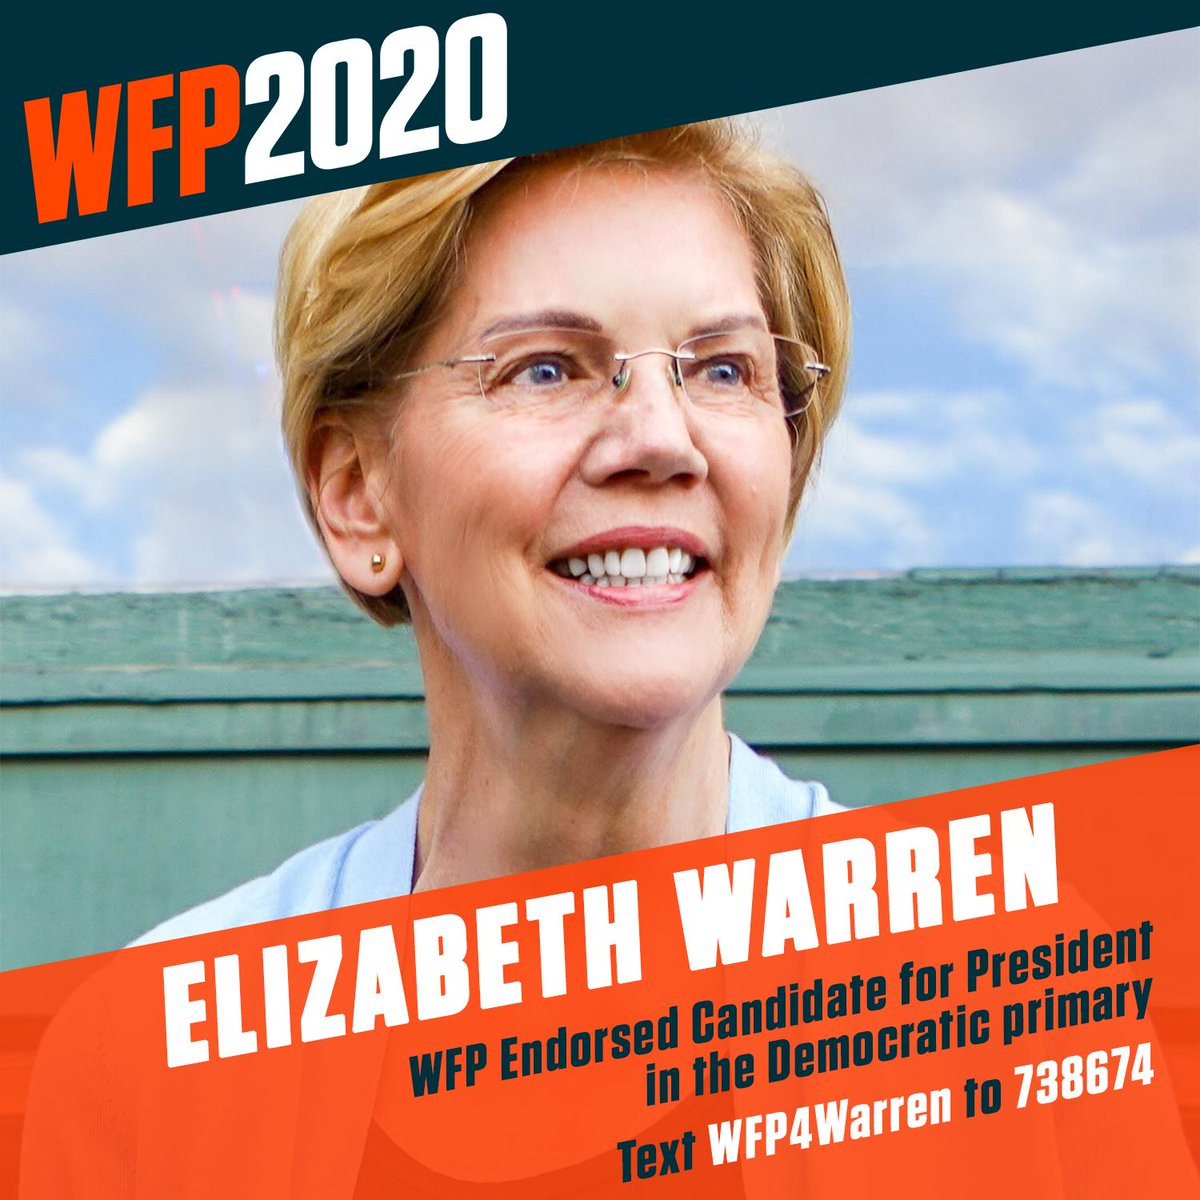 The Working Families Party is proud to announce our endorsement of @ewarren for president in the Democratic primary. #WFP2020 #WFP4Warren https://t.co/HnVofql6Xp